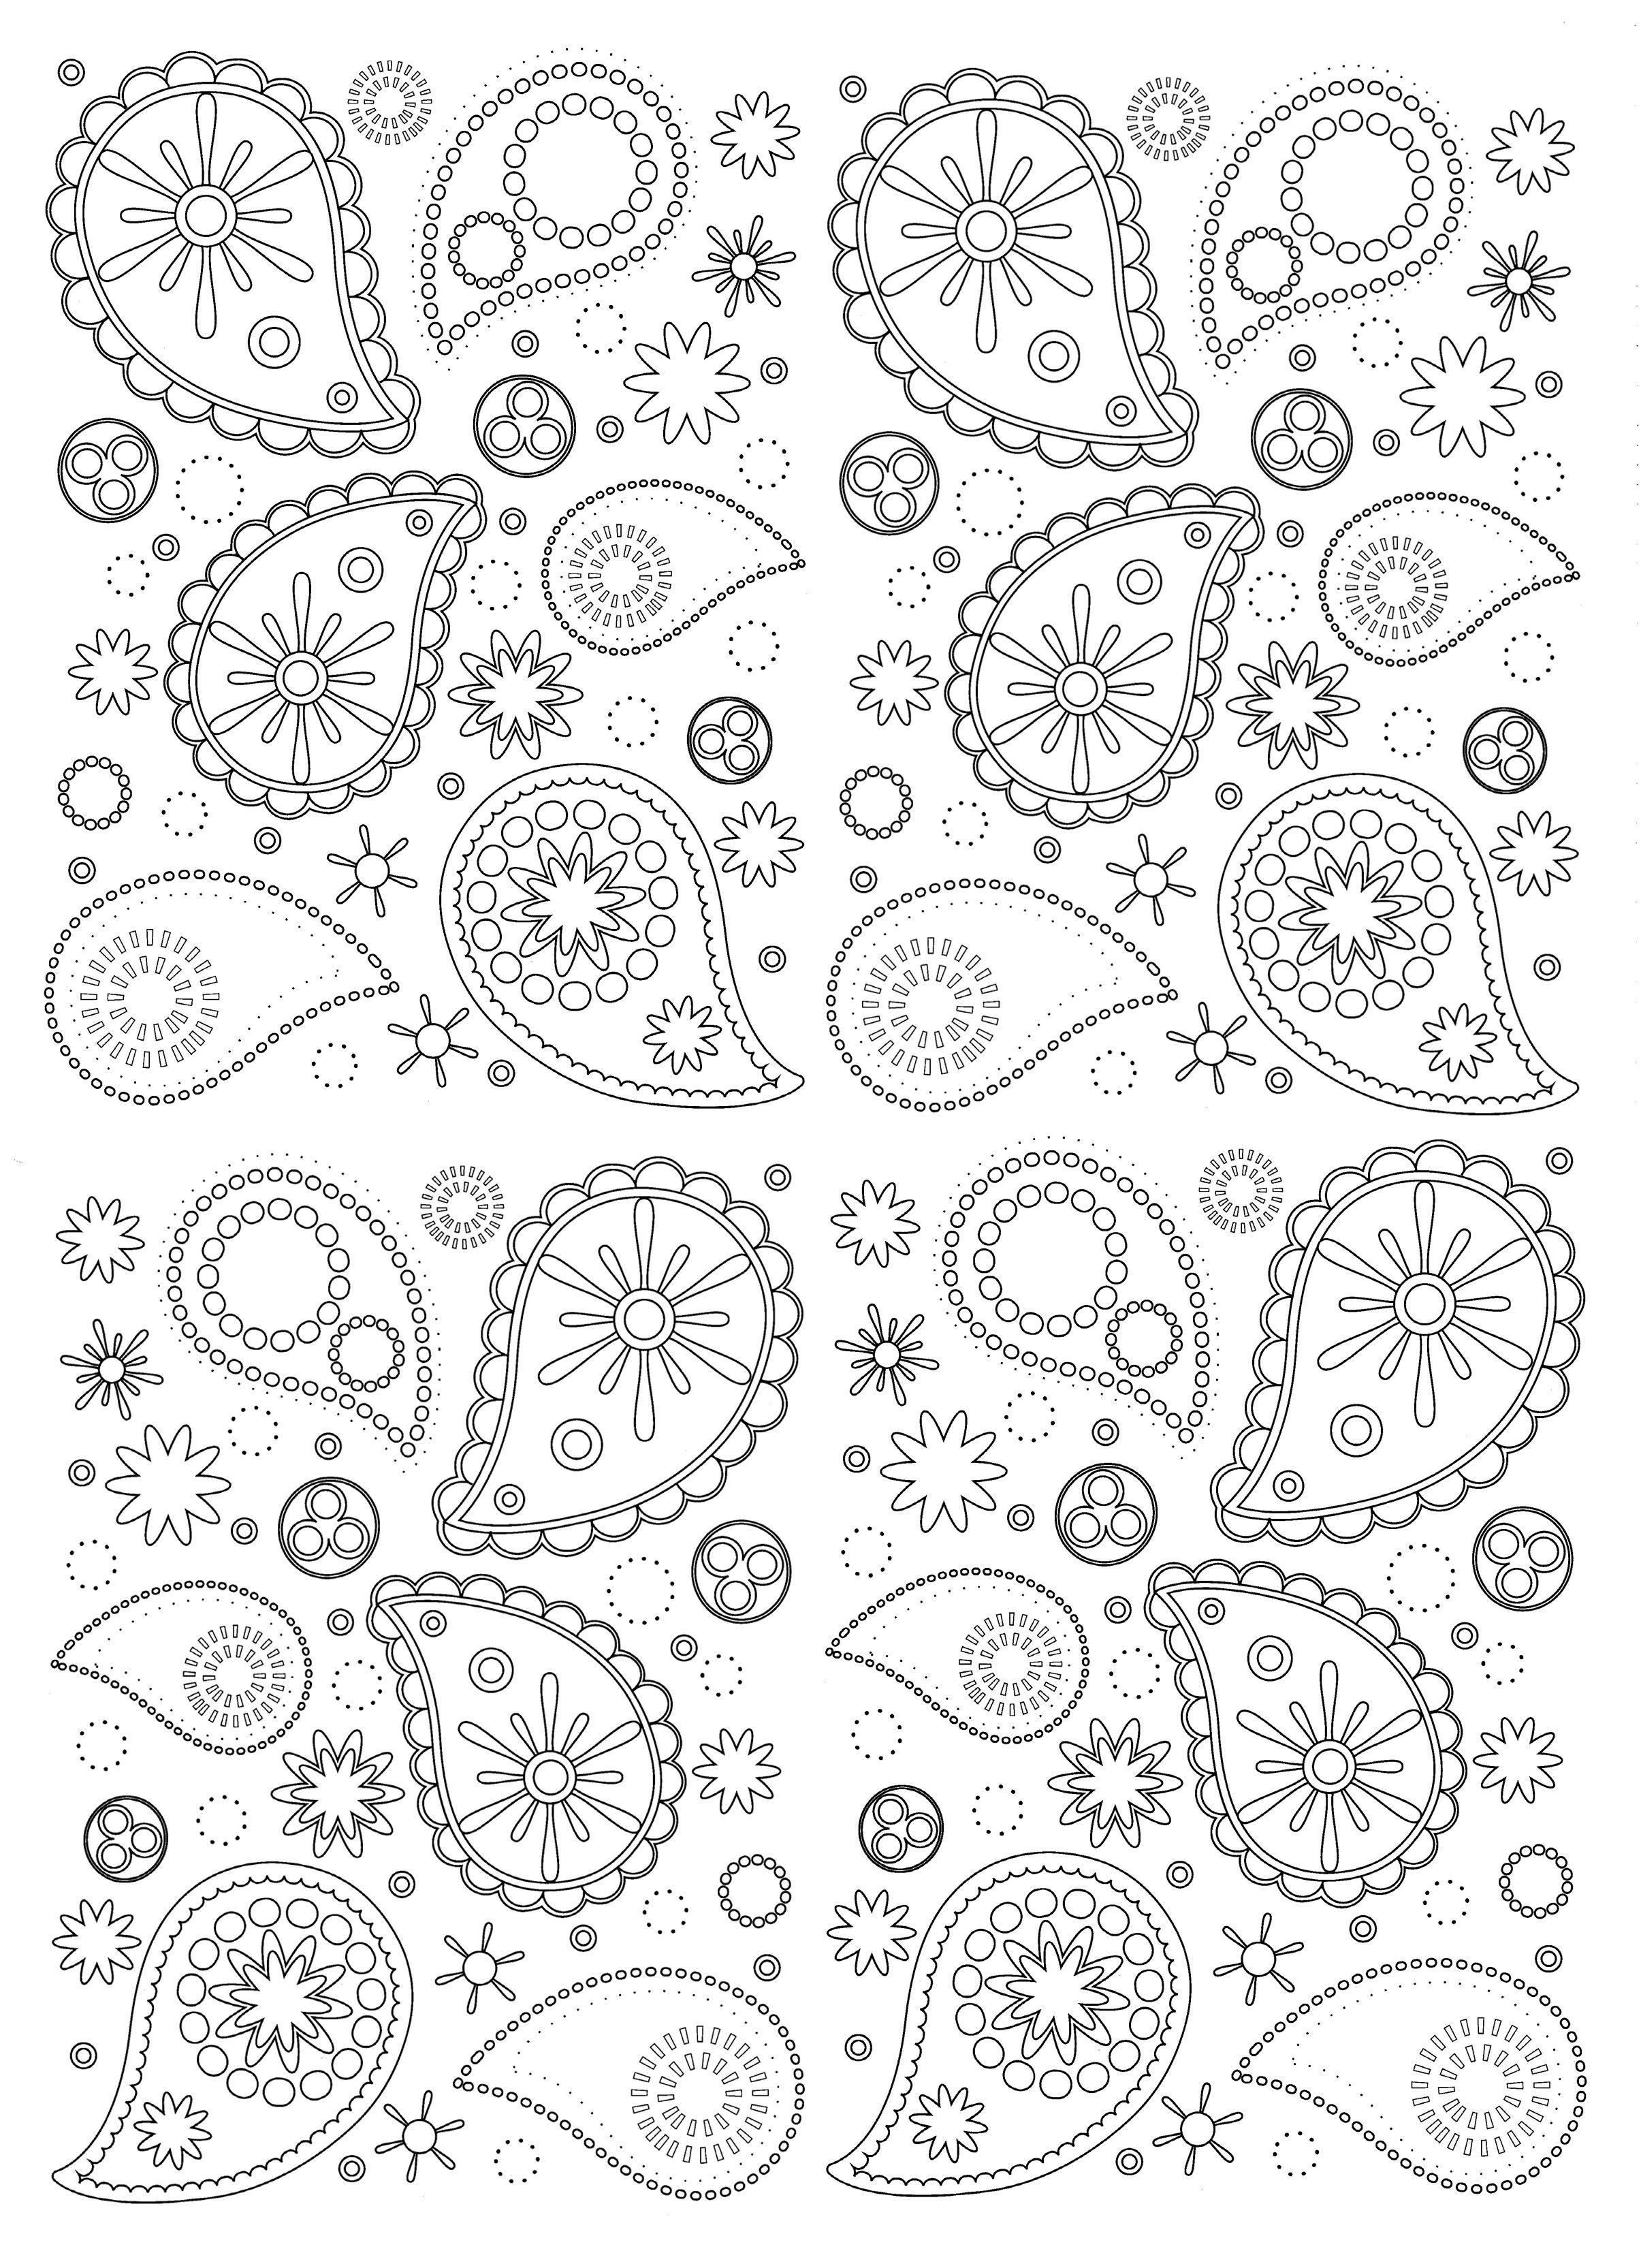 free coloring page coloring paisley beautiful and harmonious paisley patterns to print and color